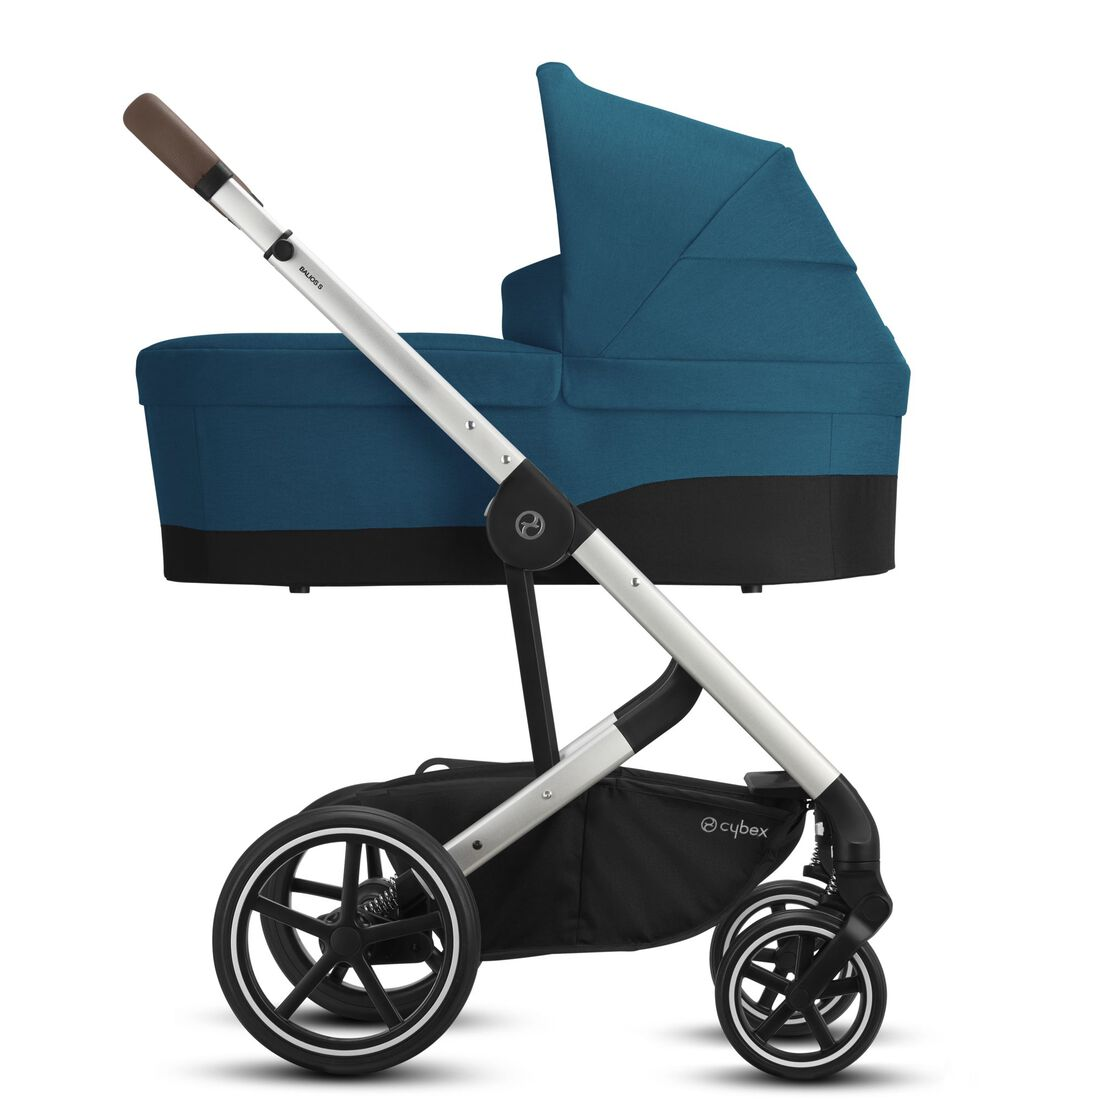 CYBEX Balios S Lux - River Blue (Silver Frame) in River Blue (Silver Frame) large image number 2